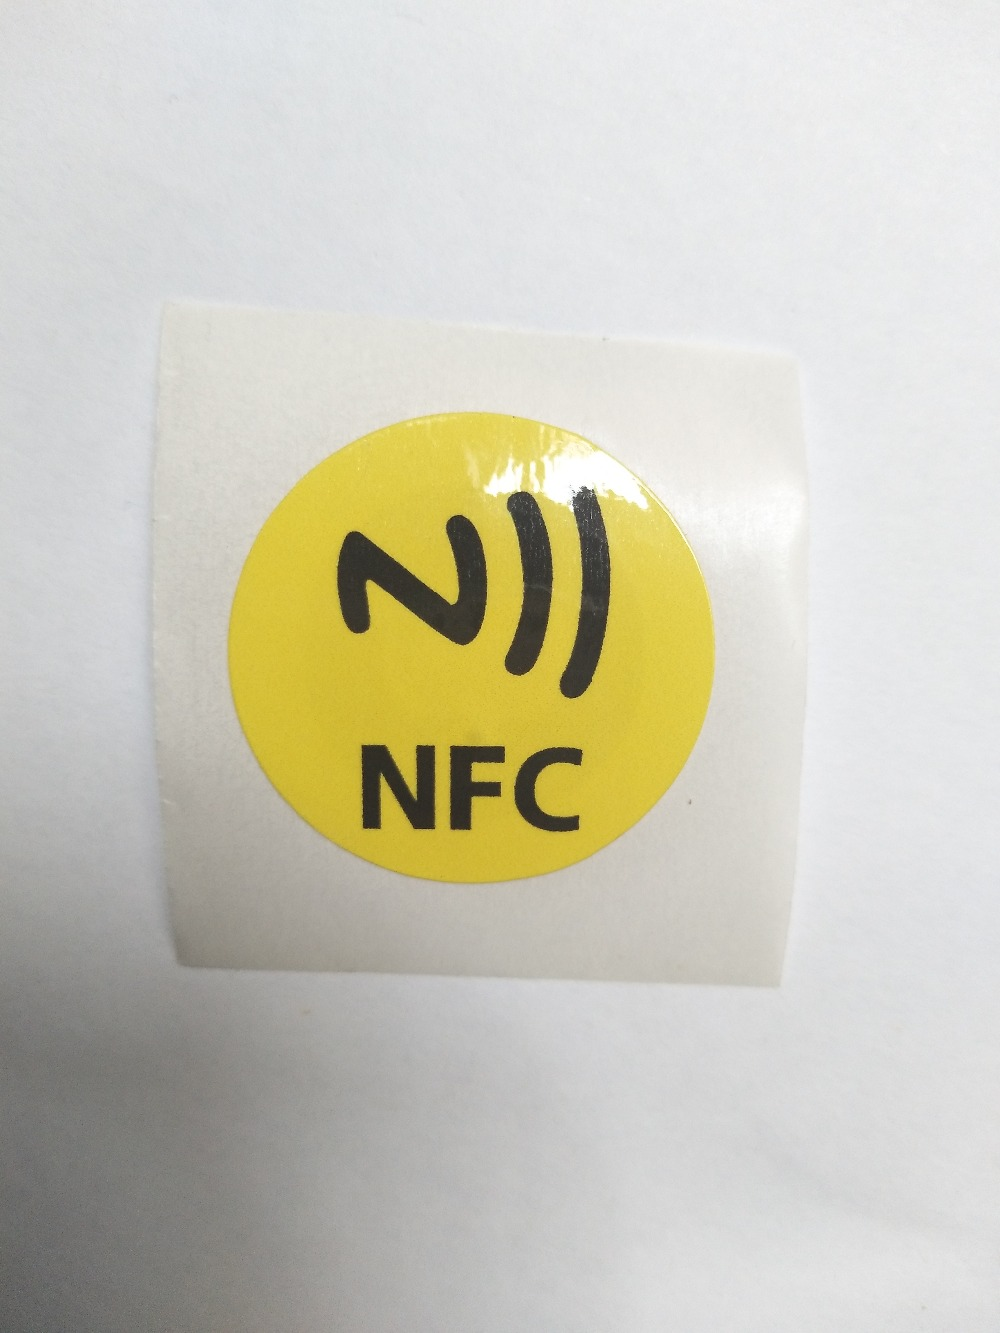 15pcs/lot NFC Tag Sticker 13.56mhz RFID Label Tag NTAG213 Chip NFC Smart Tag 1K 30mm Diameter Compatible with All NFC Phones nfc sticker ntag203 tag 13 56mhz 144 bytes rfid tag smart card support for all smart phones 100pcs